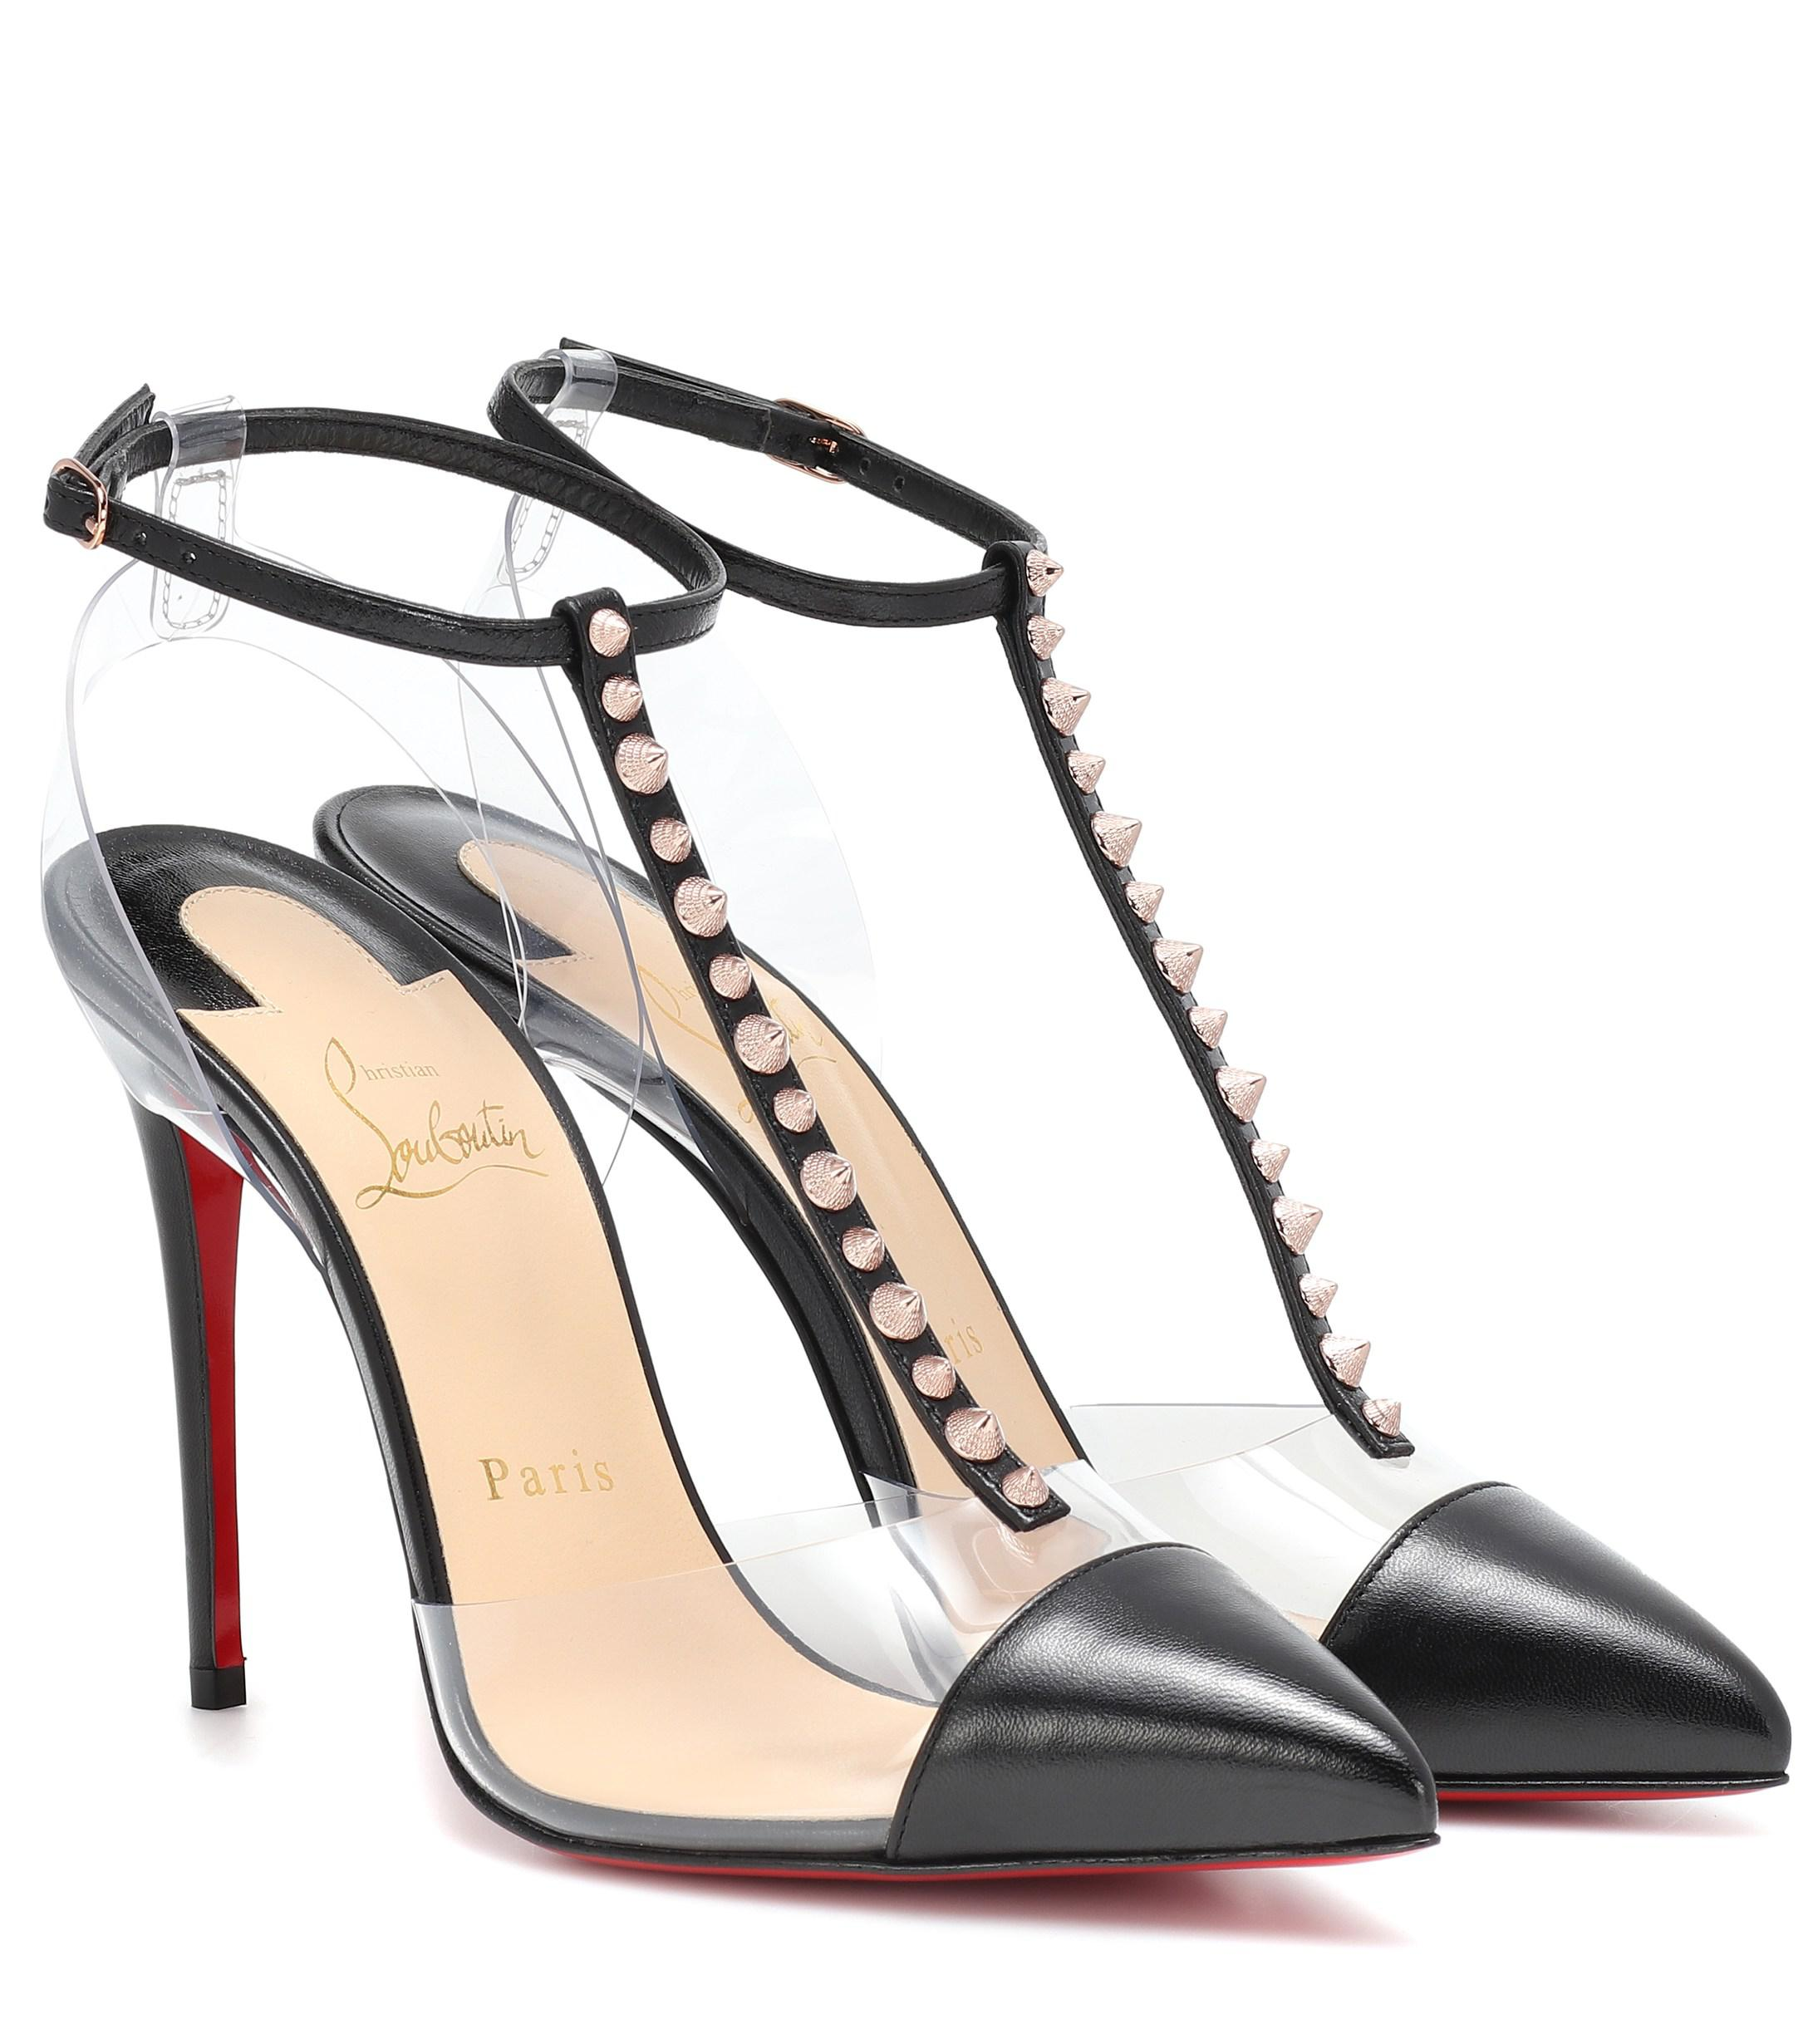 69dfb442375b Lyst - Christian Louboutin Nosy Spikes Pvc And Leather Pumps in Black